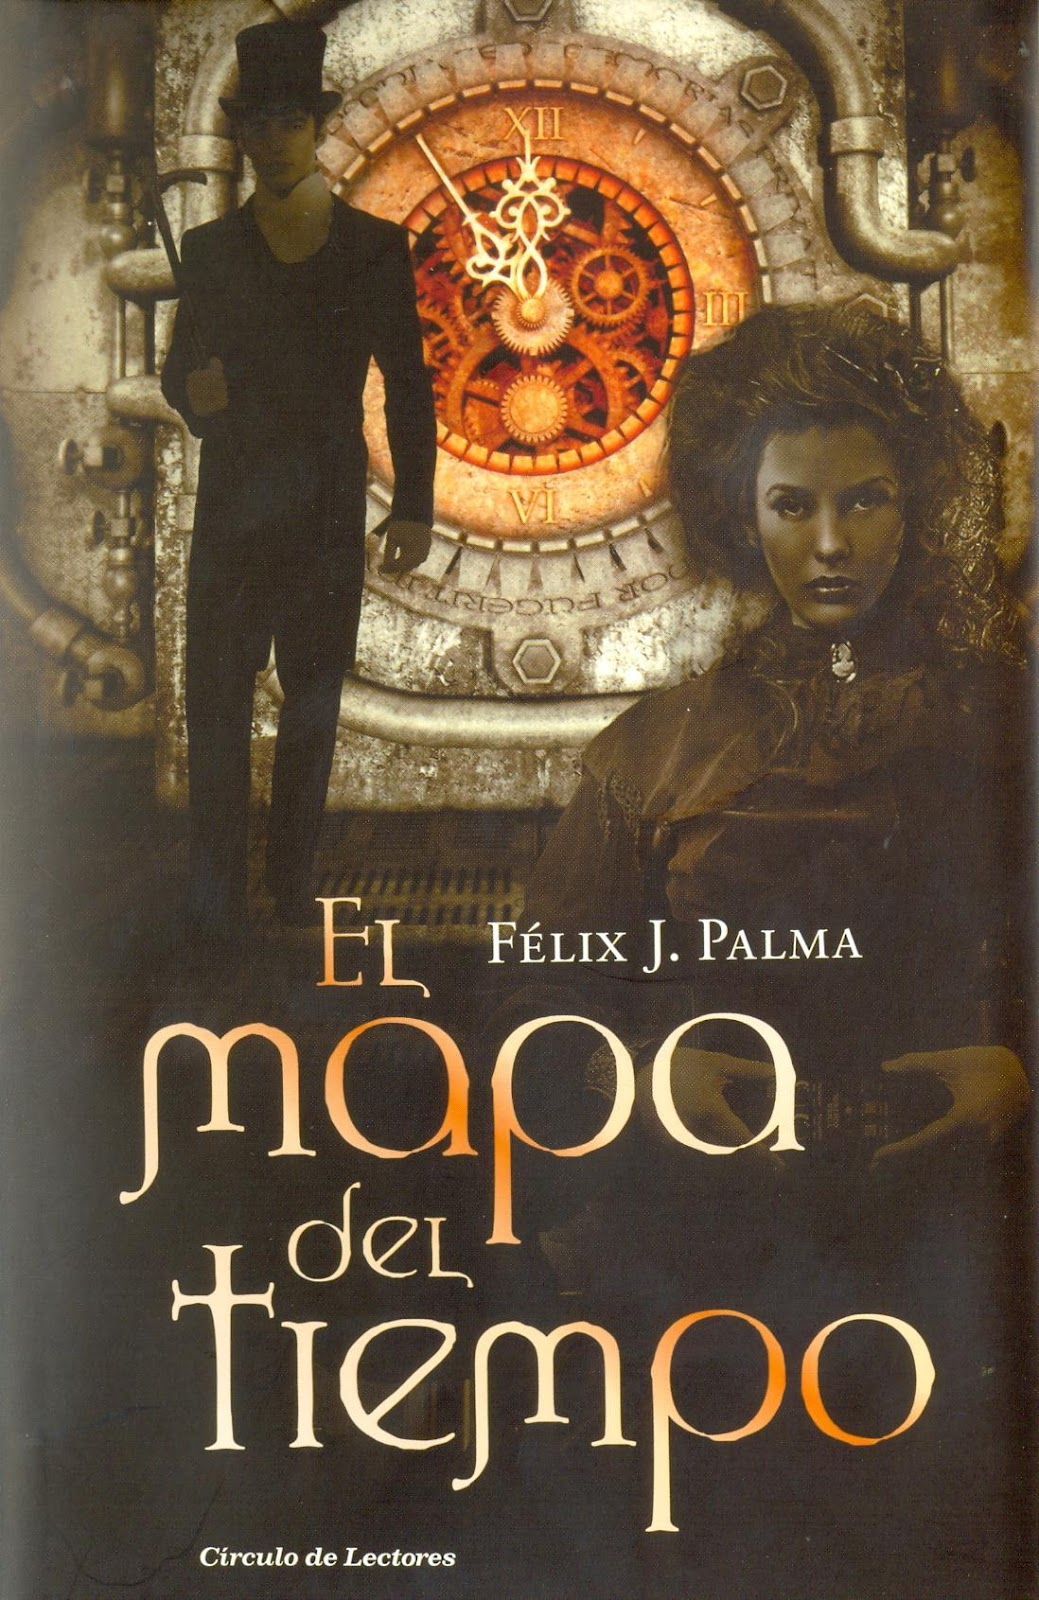 Felix J Palma Libros So Many Books So Little Time Mi Vida Sin Libros Los